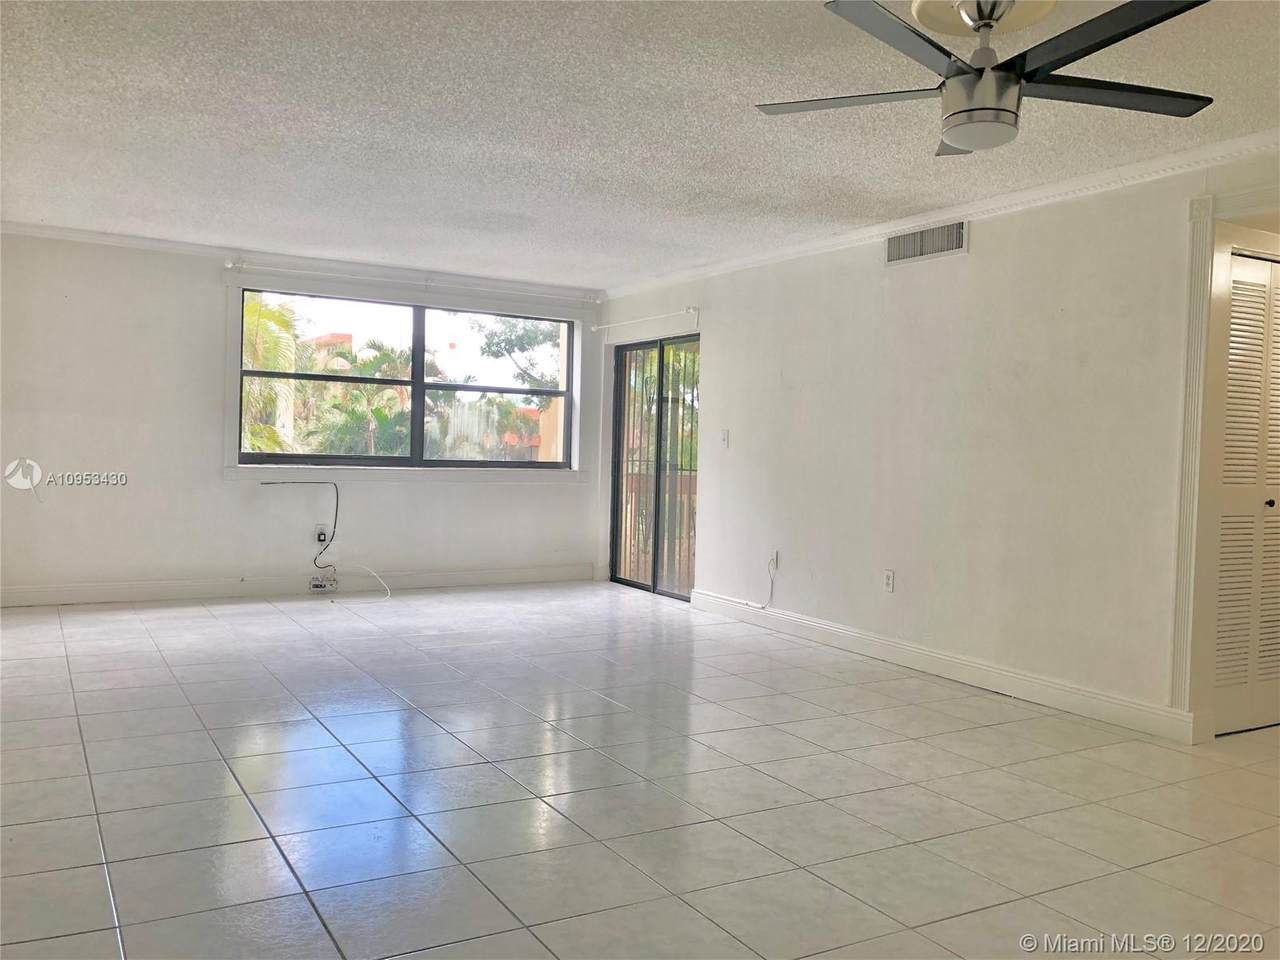 8877 Fontainebleau Blvd - Photo 1